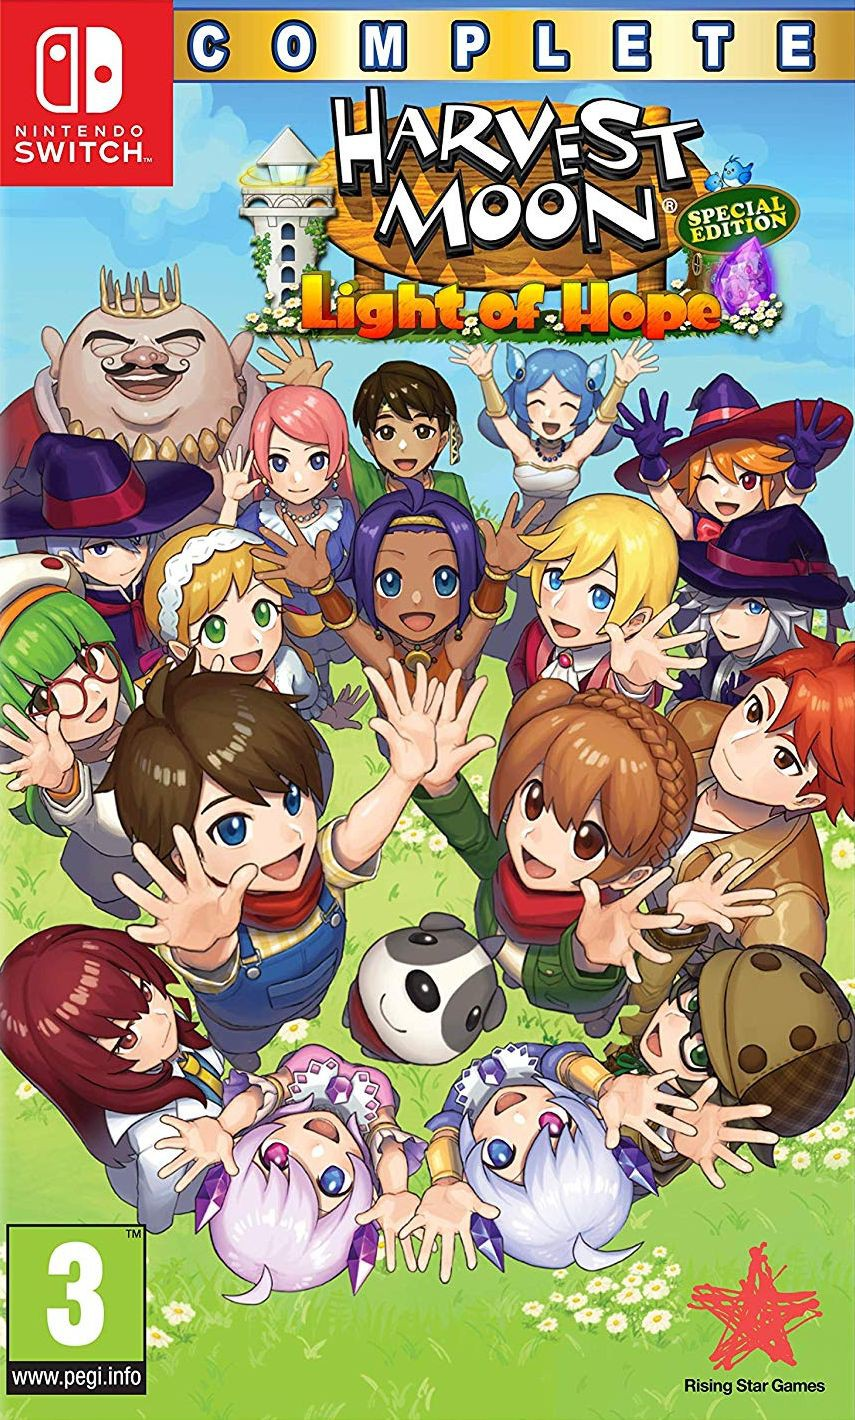 Harvest Moon: Light of Hope Complete Special Edition